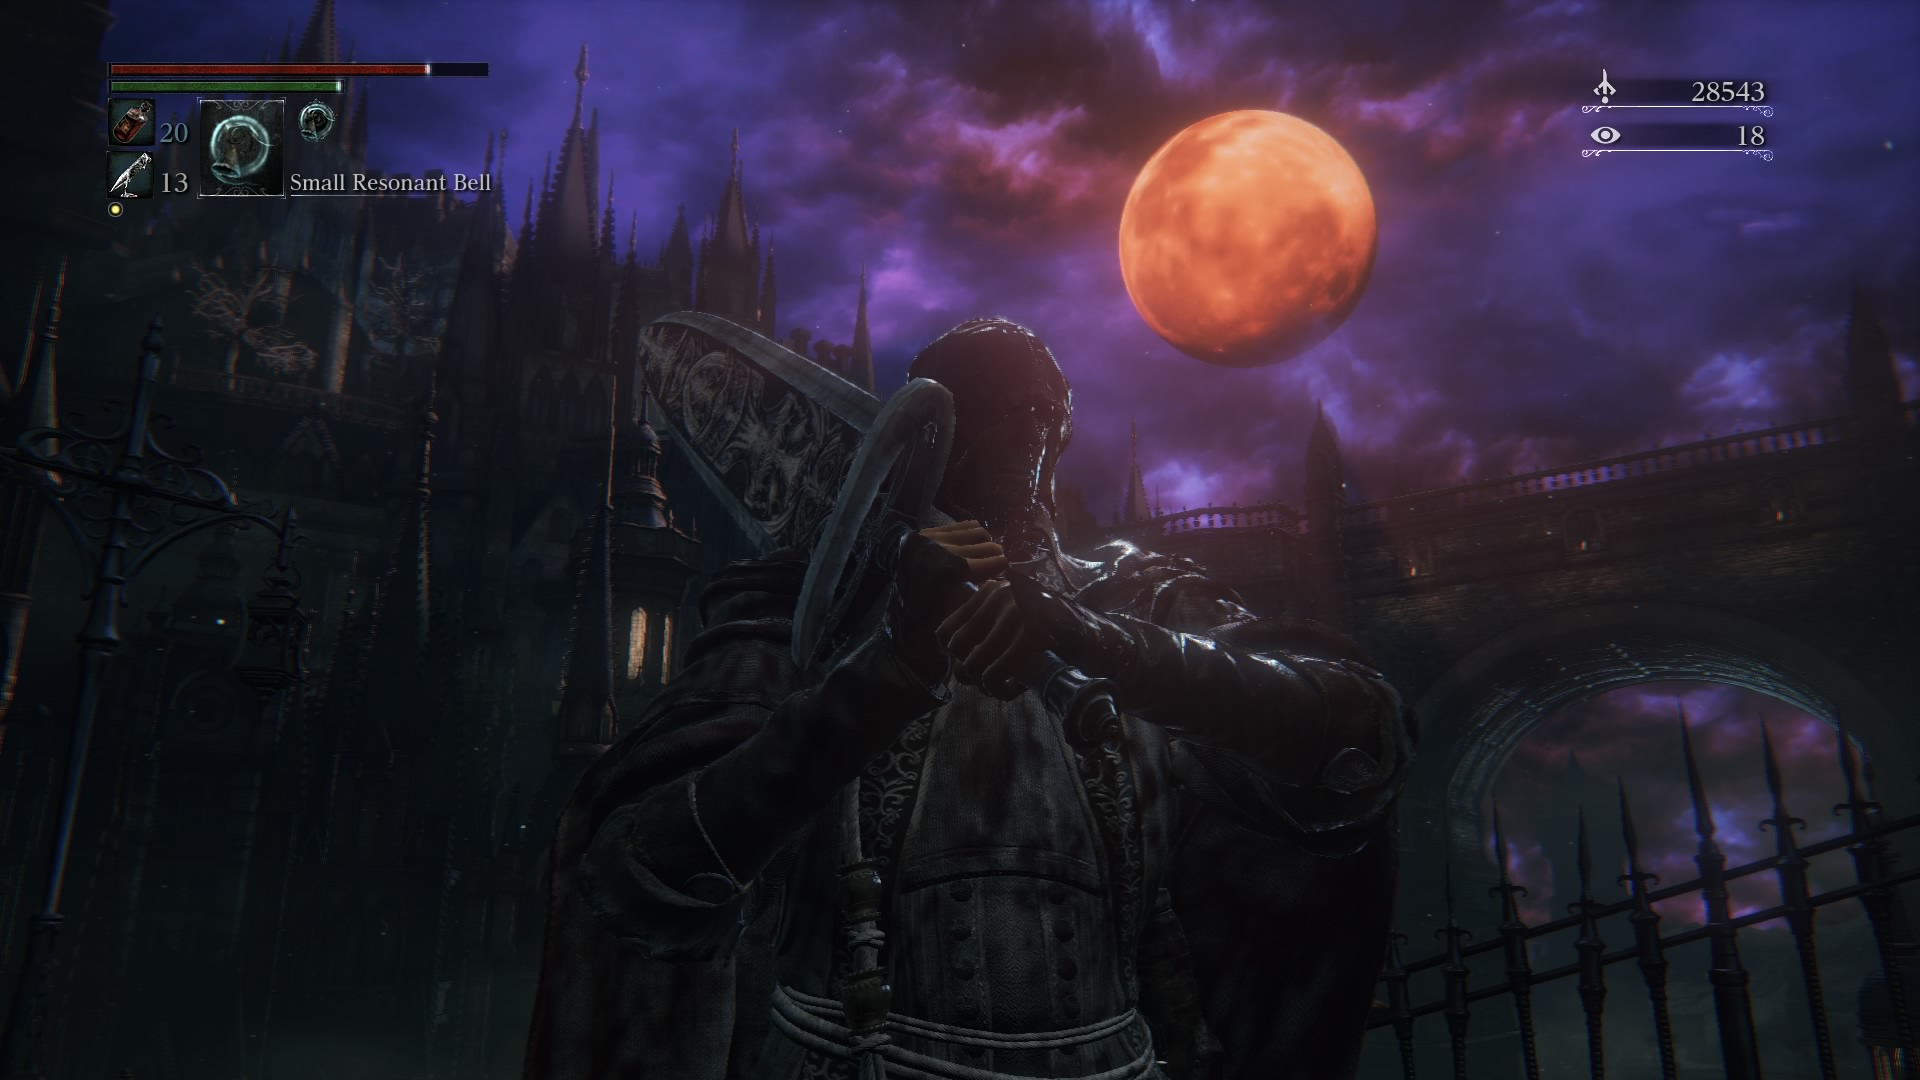 So much of bloodborne is so incredibly intense that i find myself, in the quieter moments of respite, taking selfies with the moon.